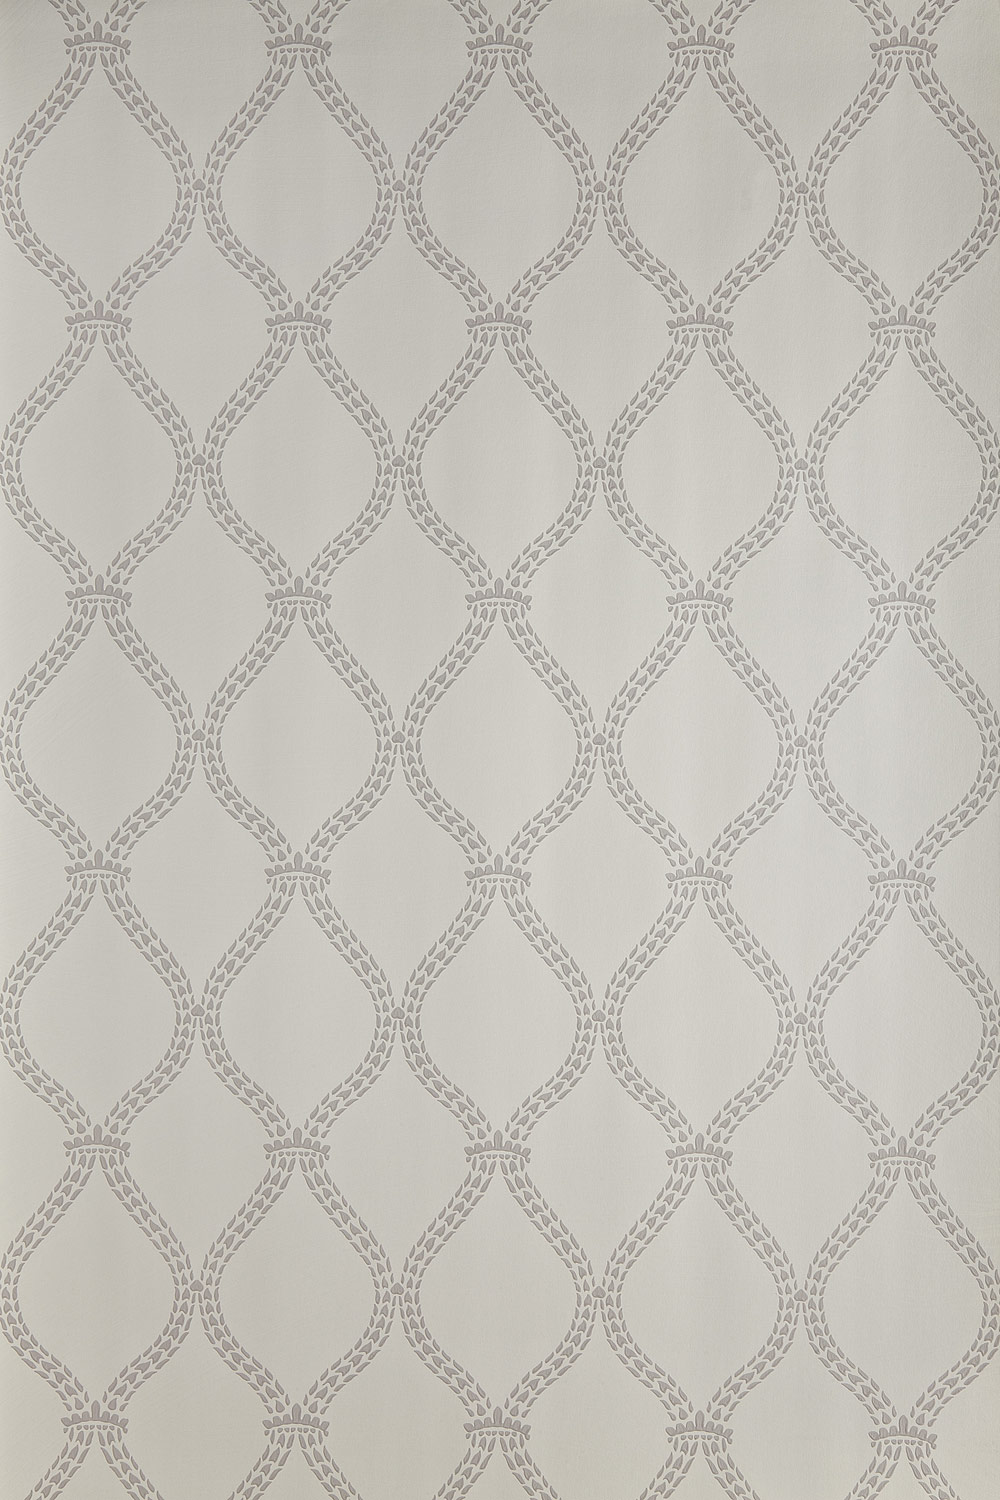 Farrow & Ball Crivelli Trellis BP 3102